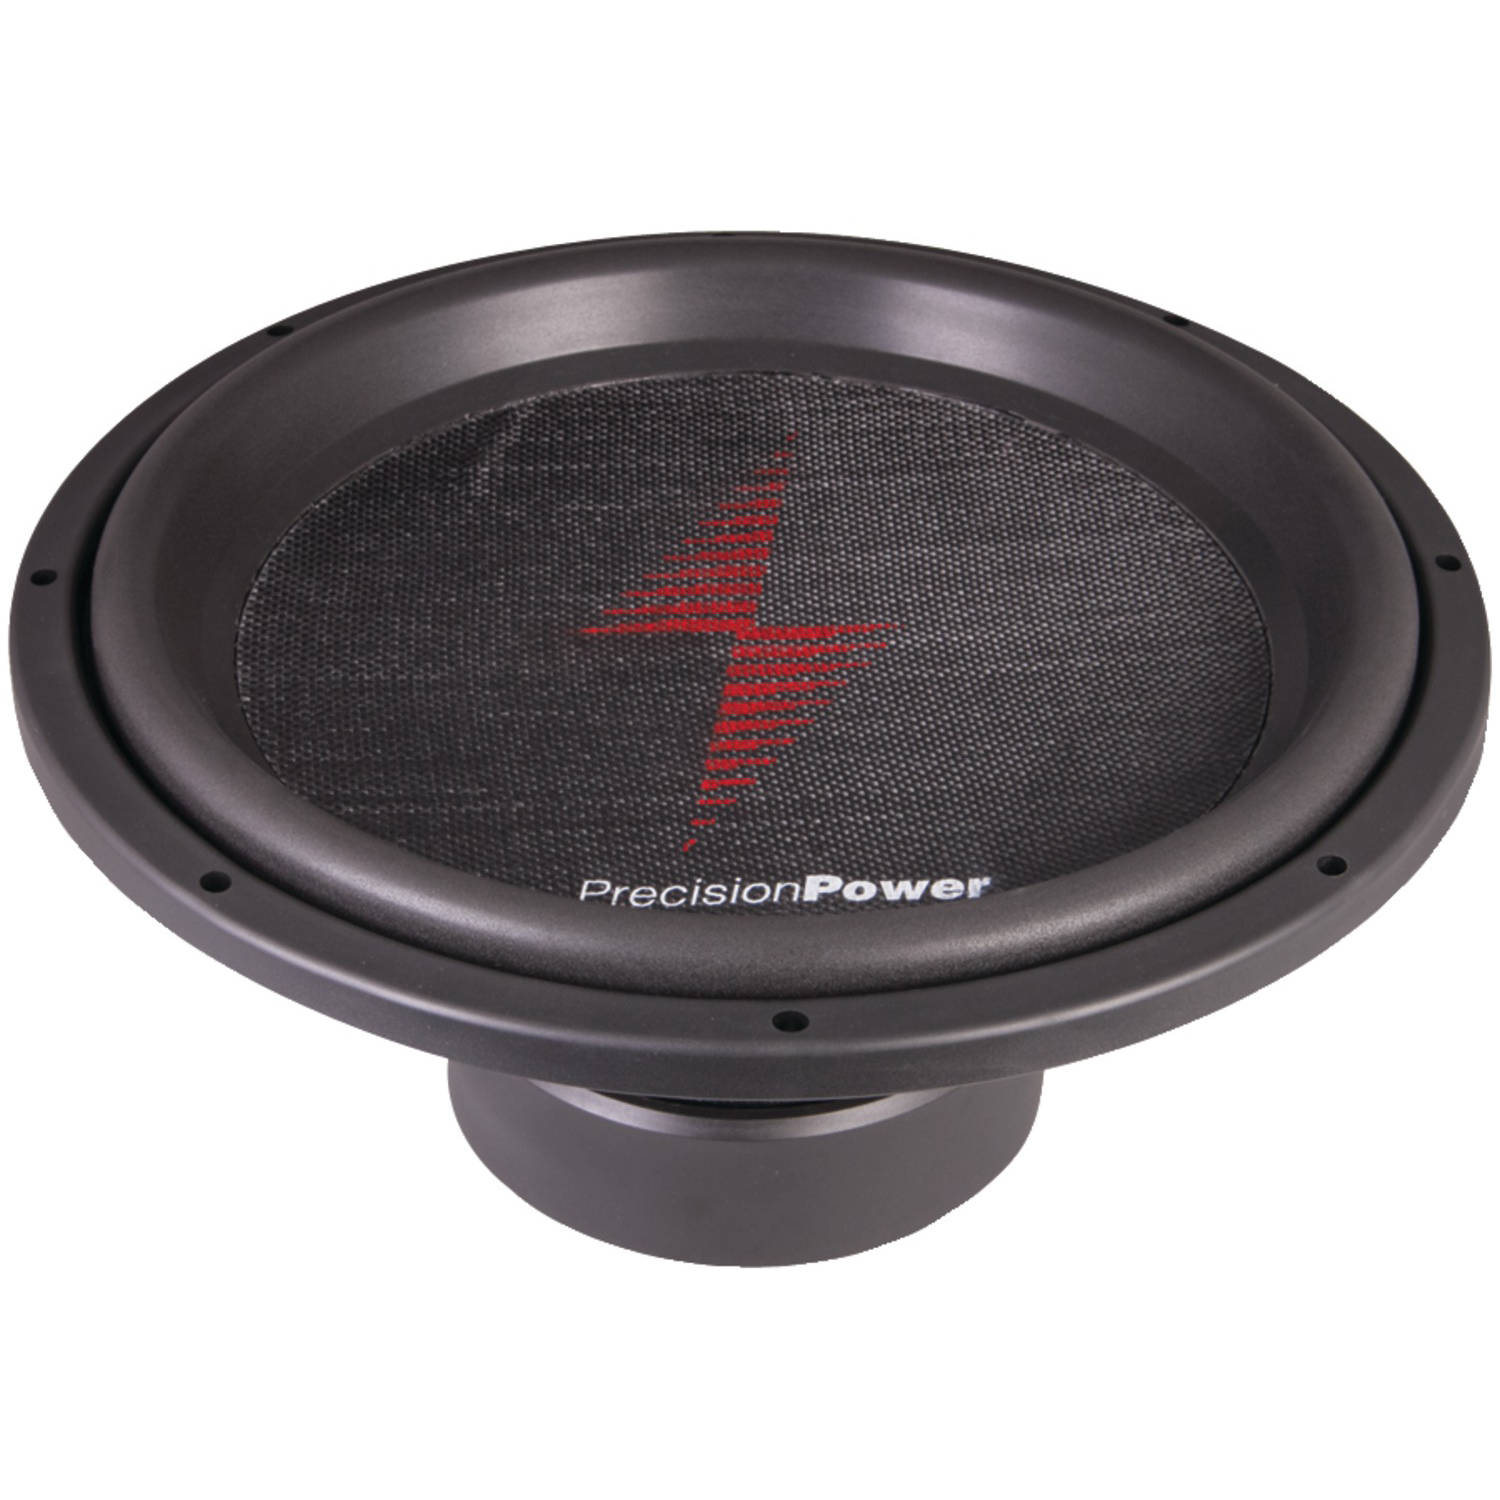 "Presision Power PH15 Precision Power 15"" Woofer 900w Rms"